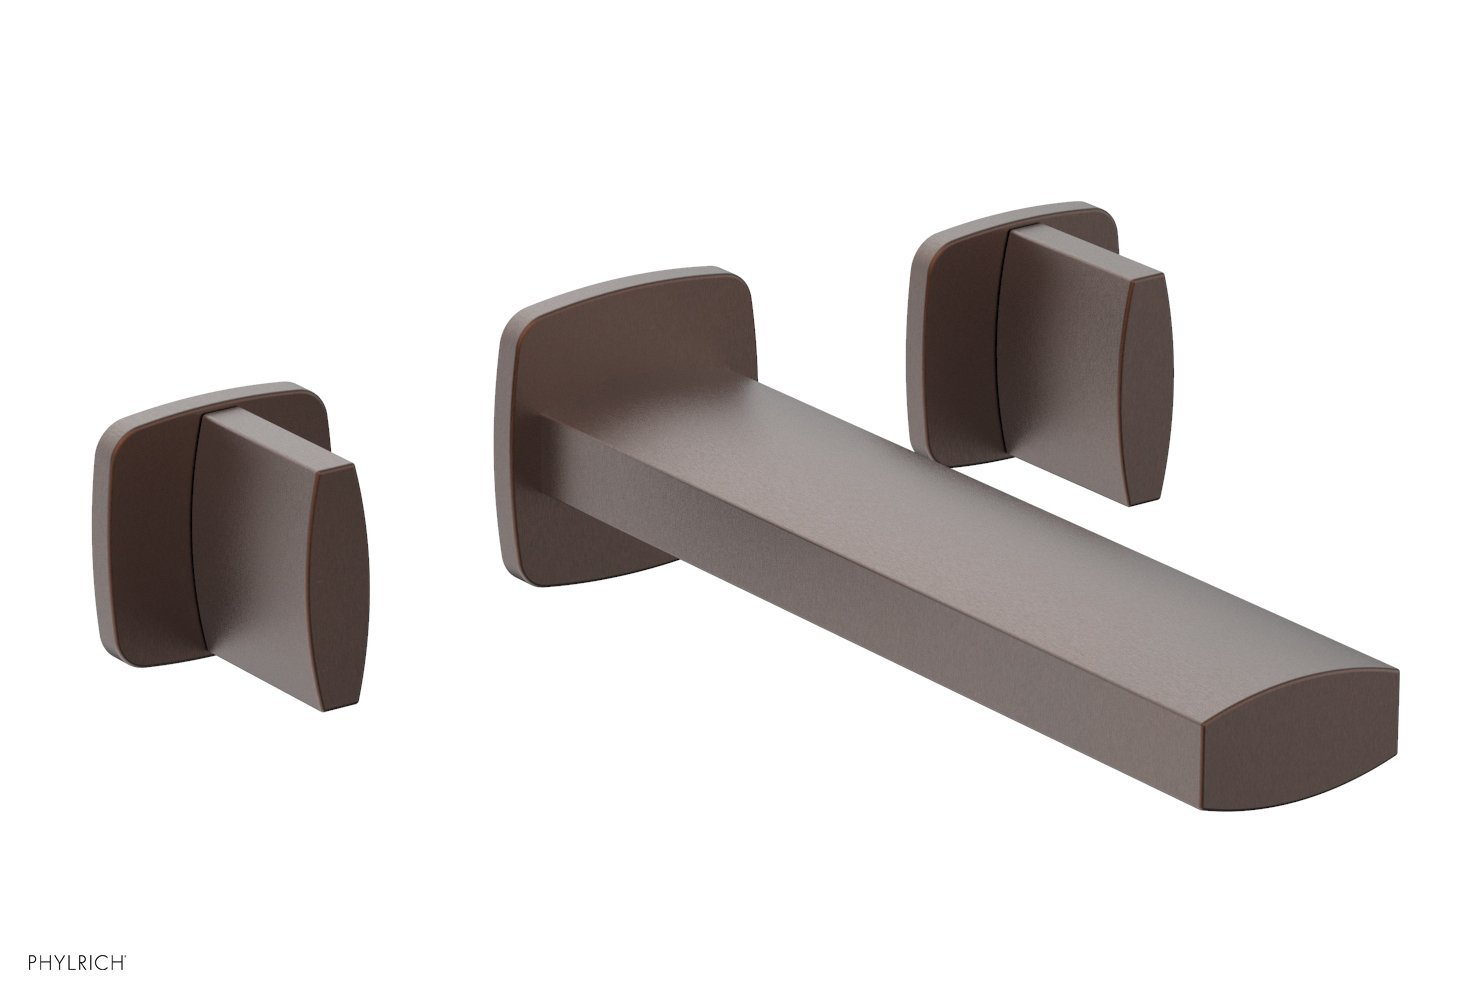 Phylrich 181-11-05W RADI Wall Lavatory Set - Blade Handles - Weathered Copper